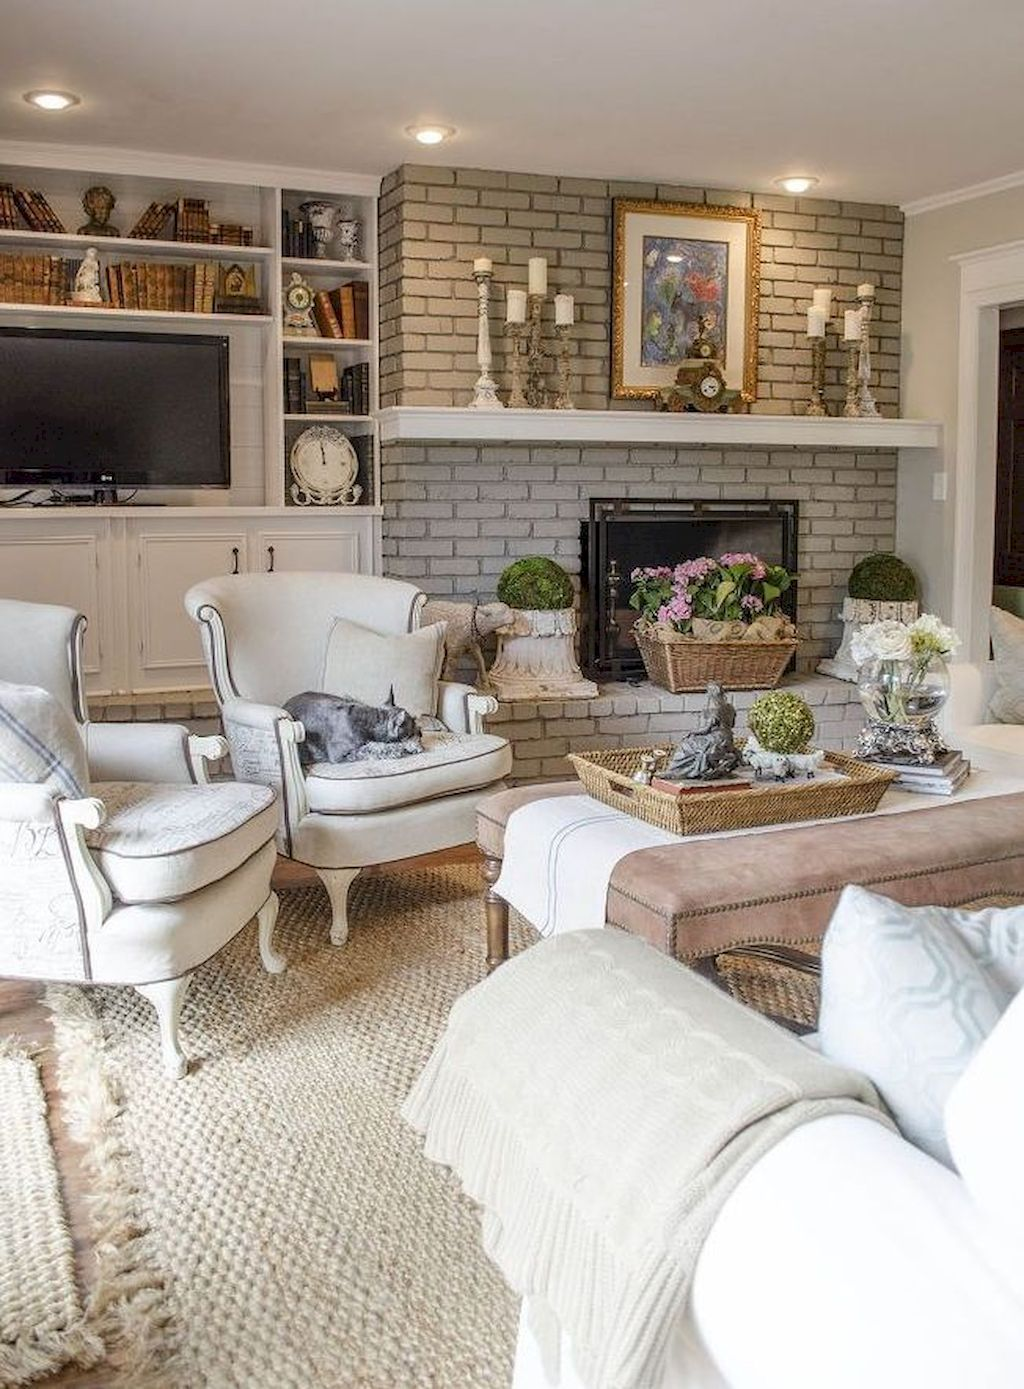 29 Living Room Interior Design: 29 Beautiful French Country Living Room Decor Ideas